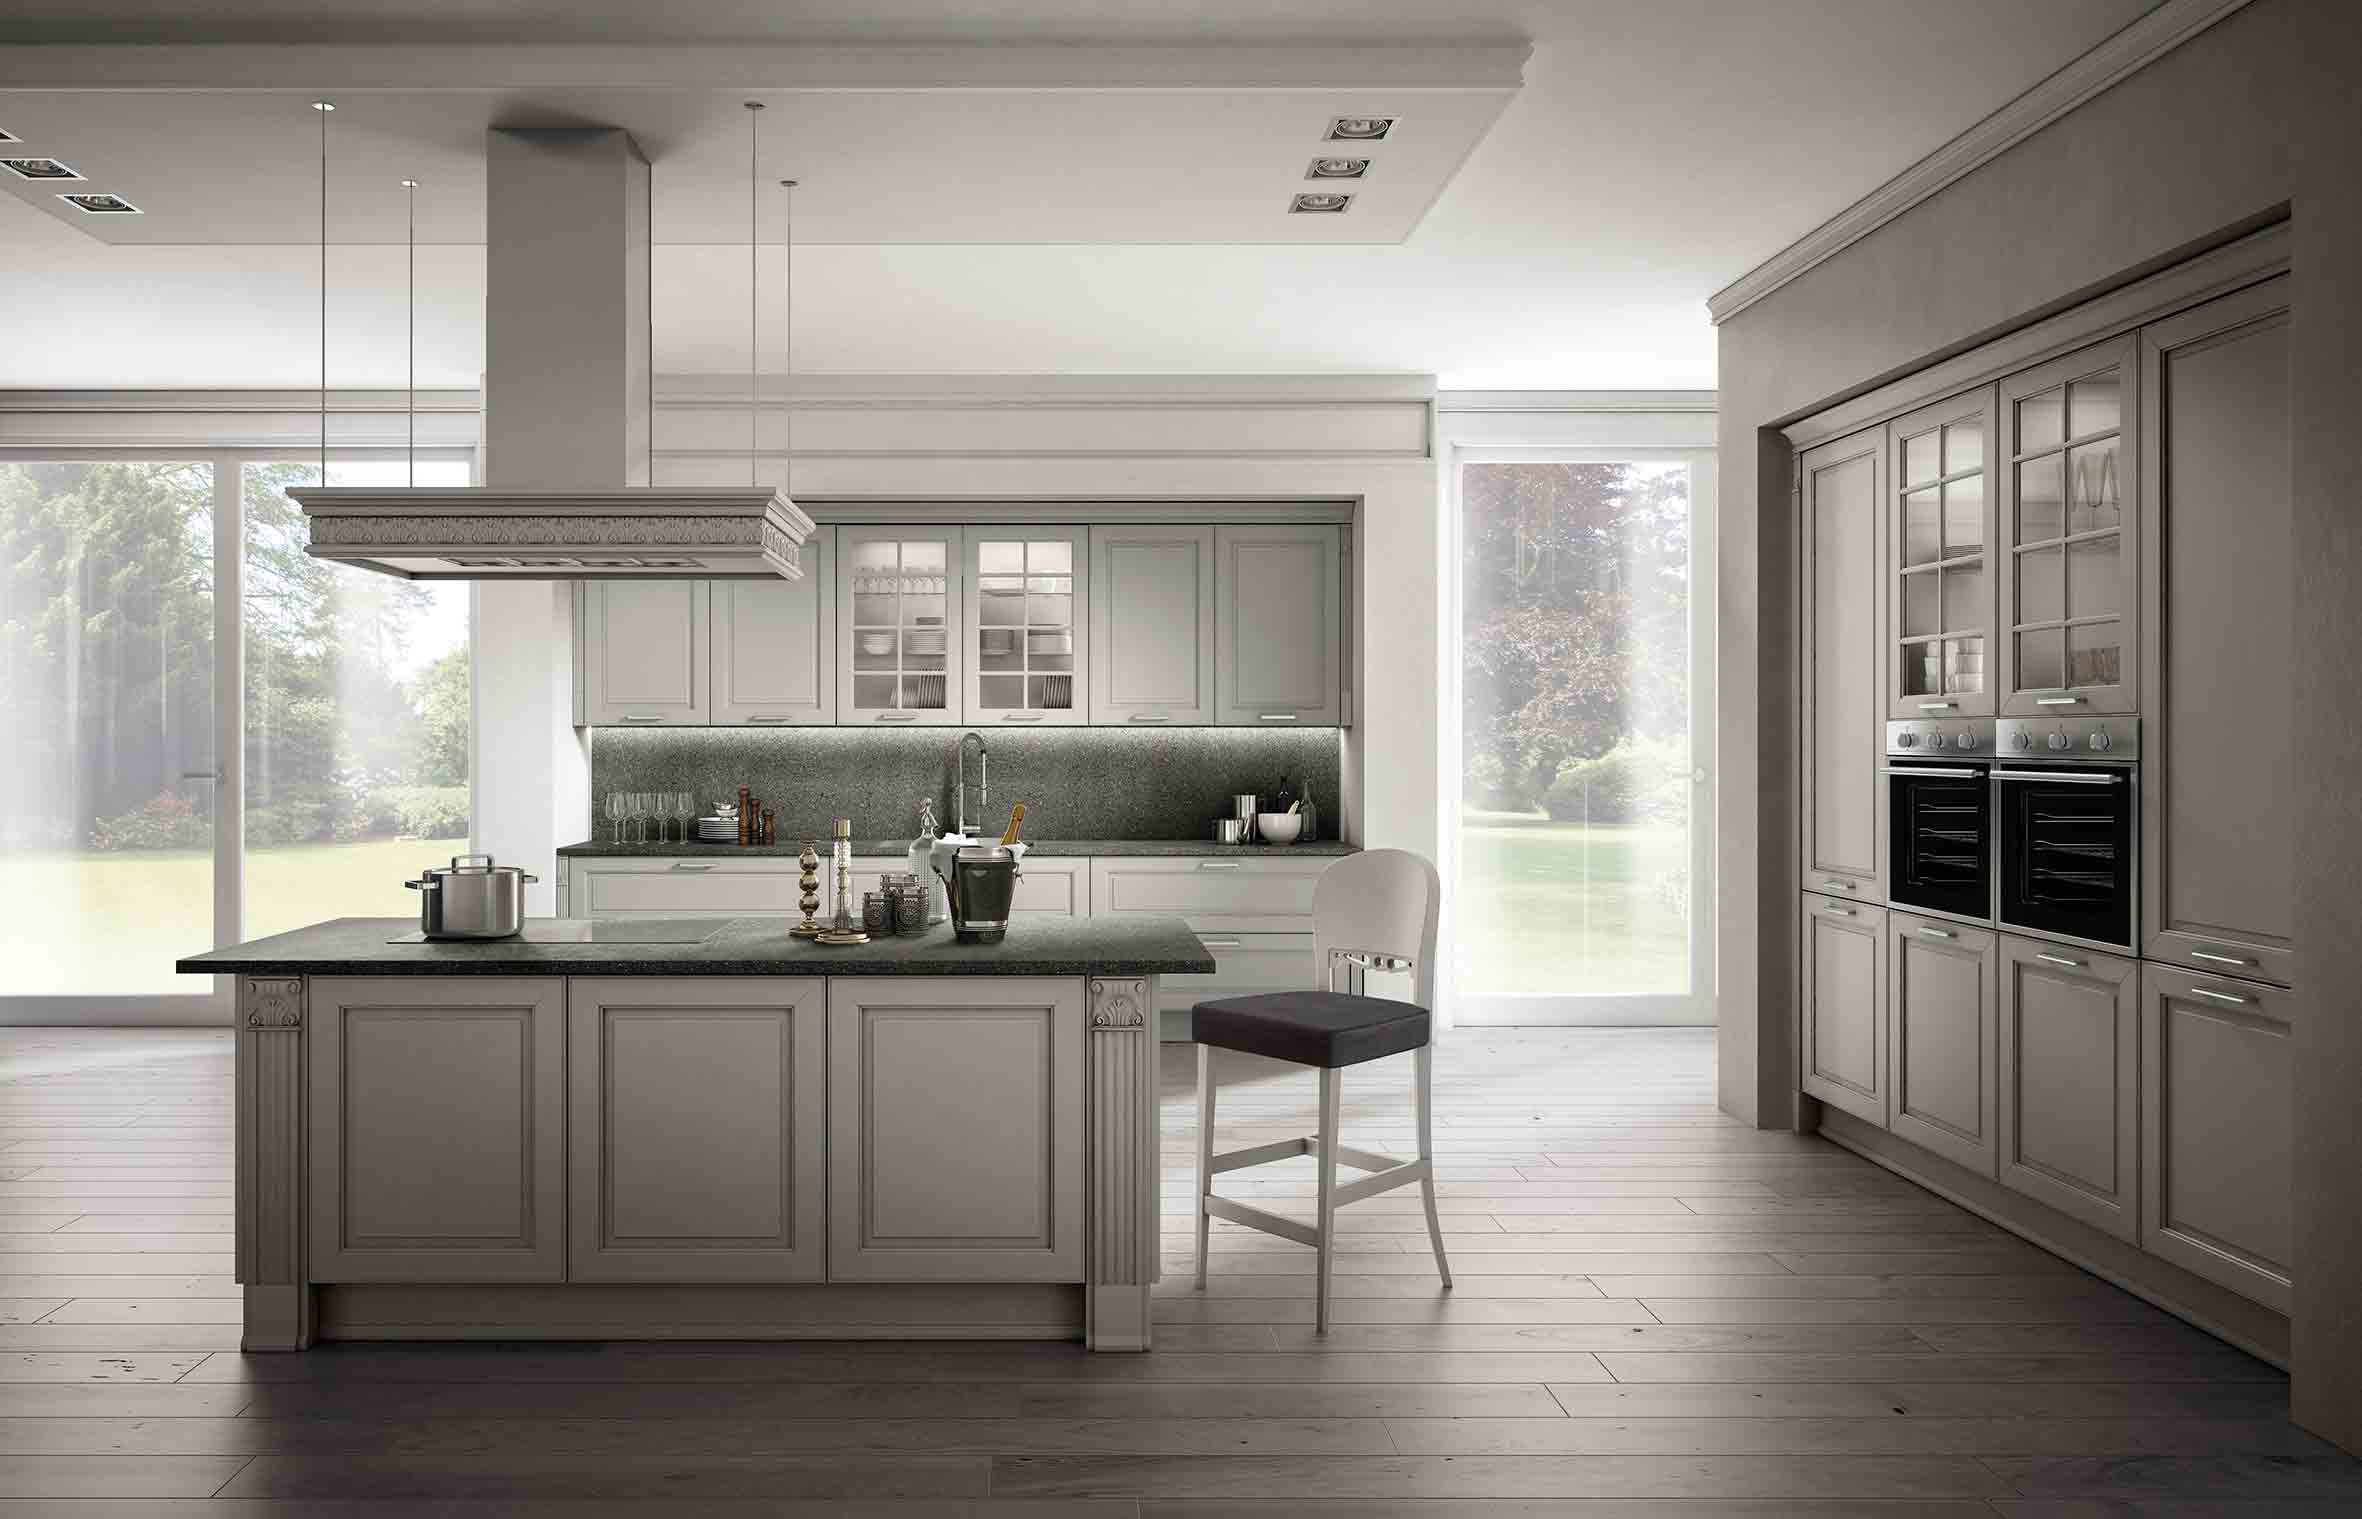 Classic Dolcevita Traditional Kitchens Sydney - Eurolife